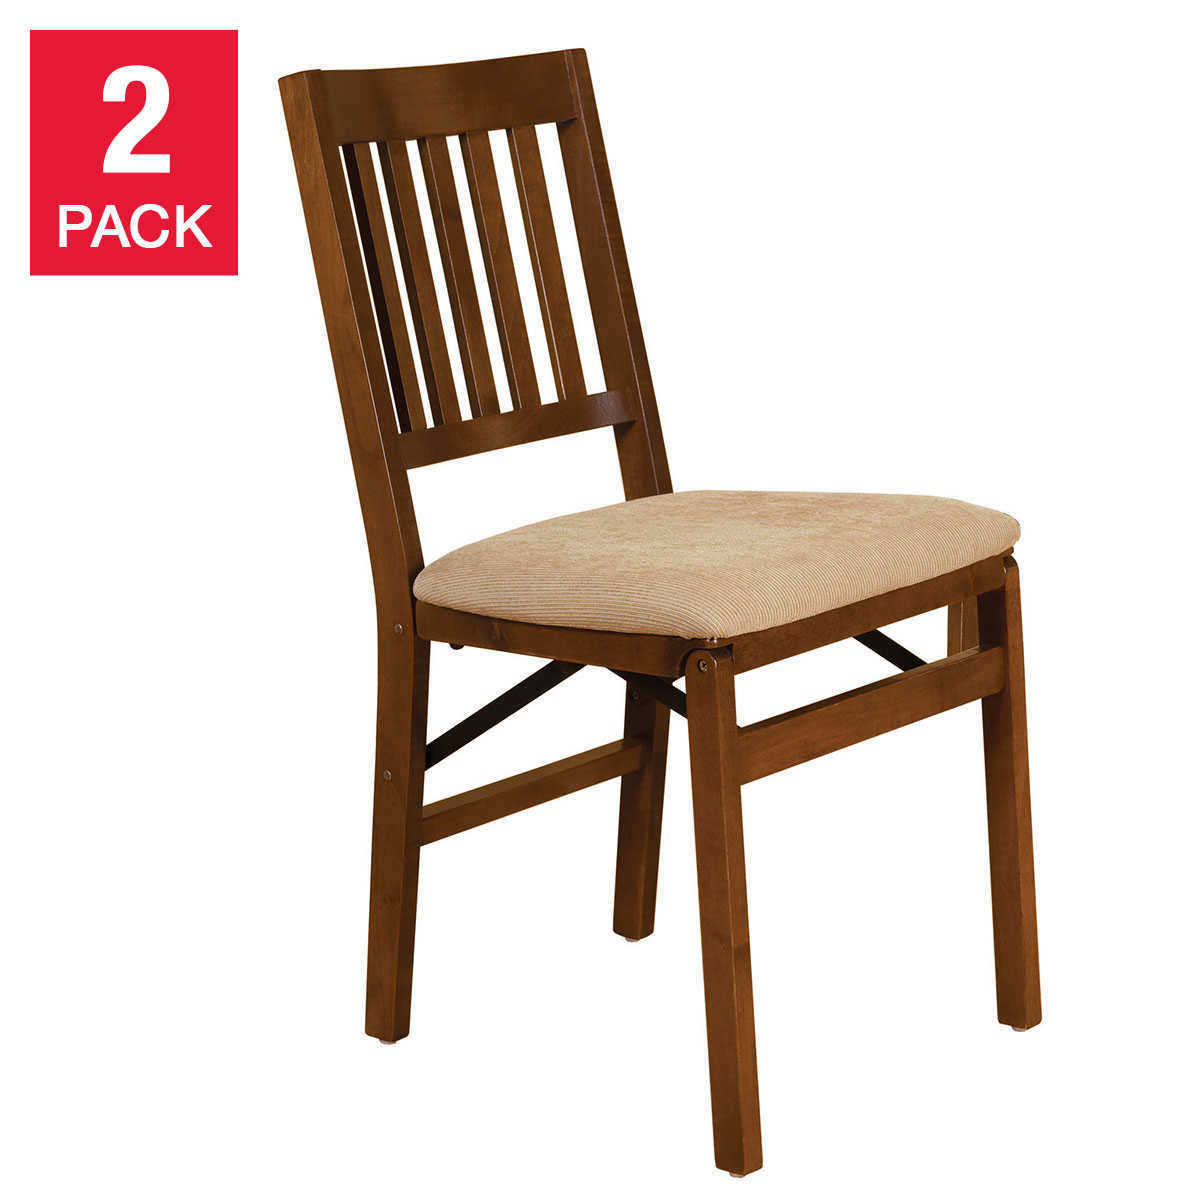 Stakmore Solid Wood Upholstered Folding Chair Fruitwood Finish 2pk